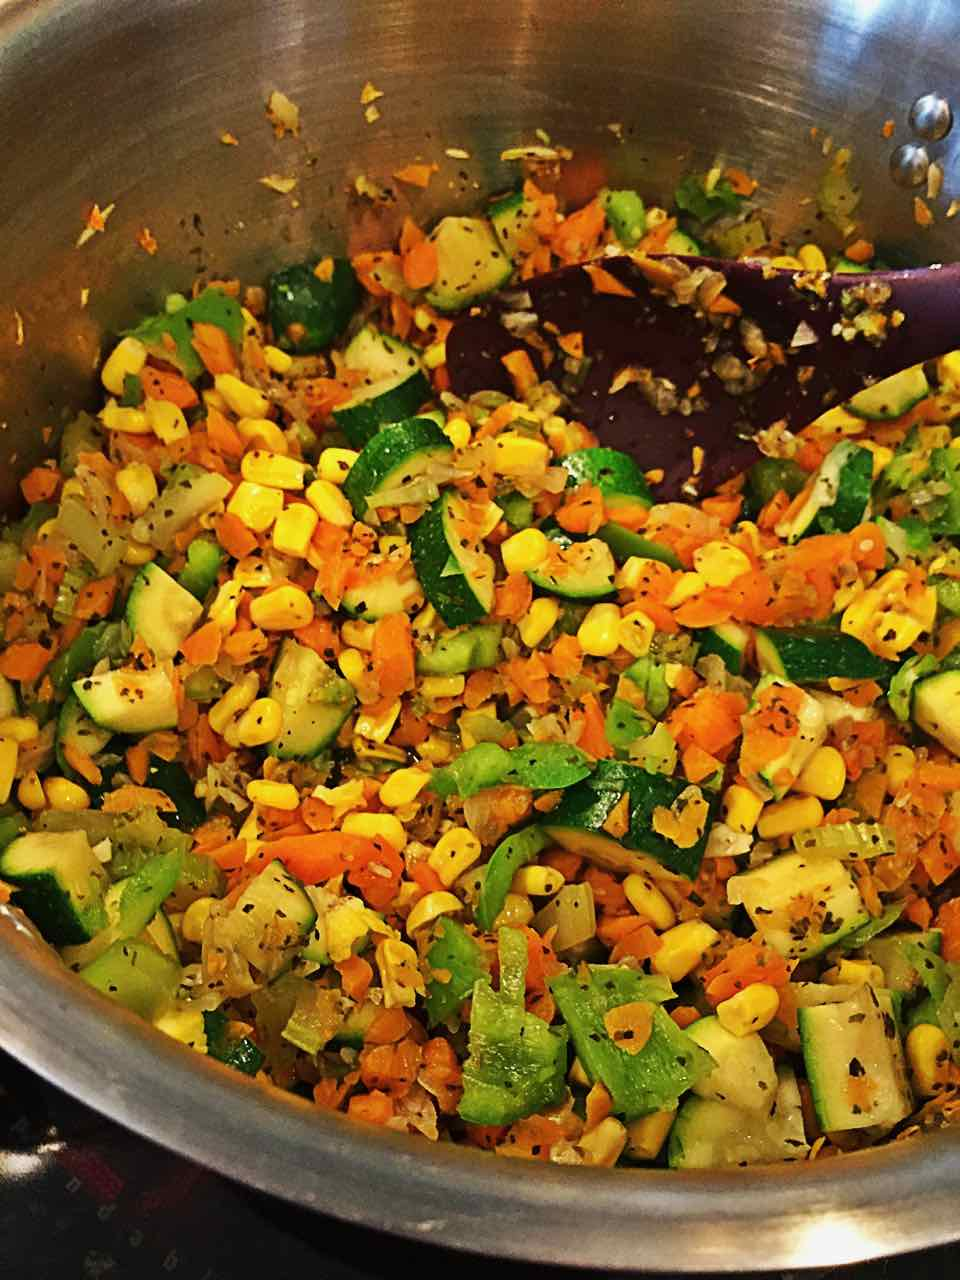 Image of vegetables cooking in a pot, ready for the soup broth to be added.